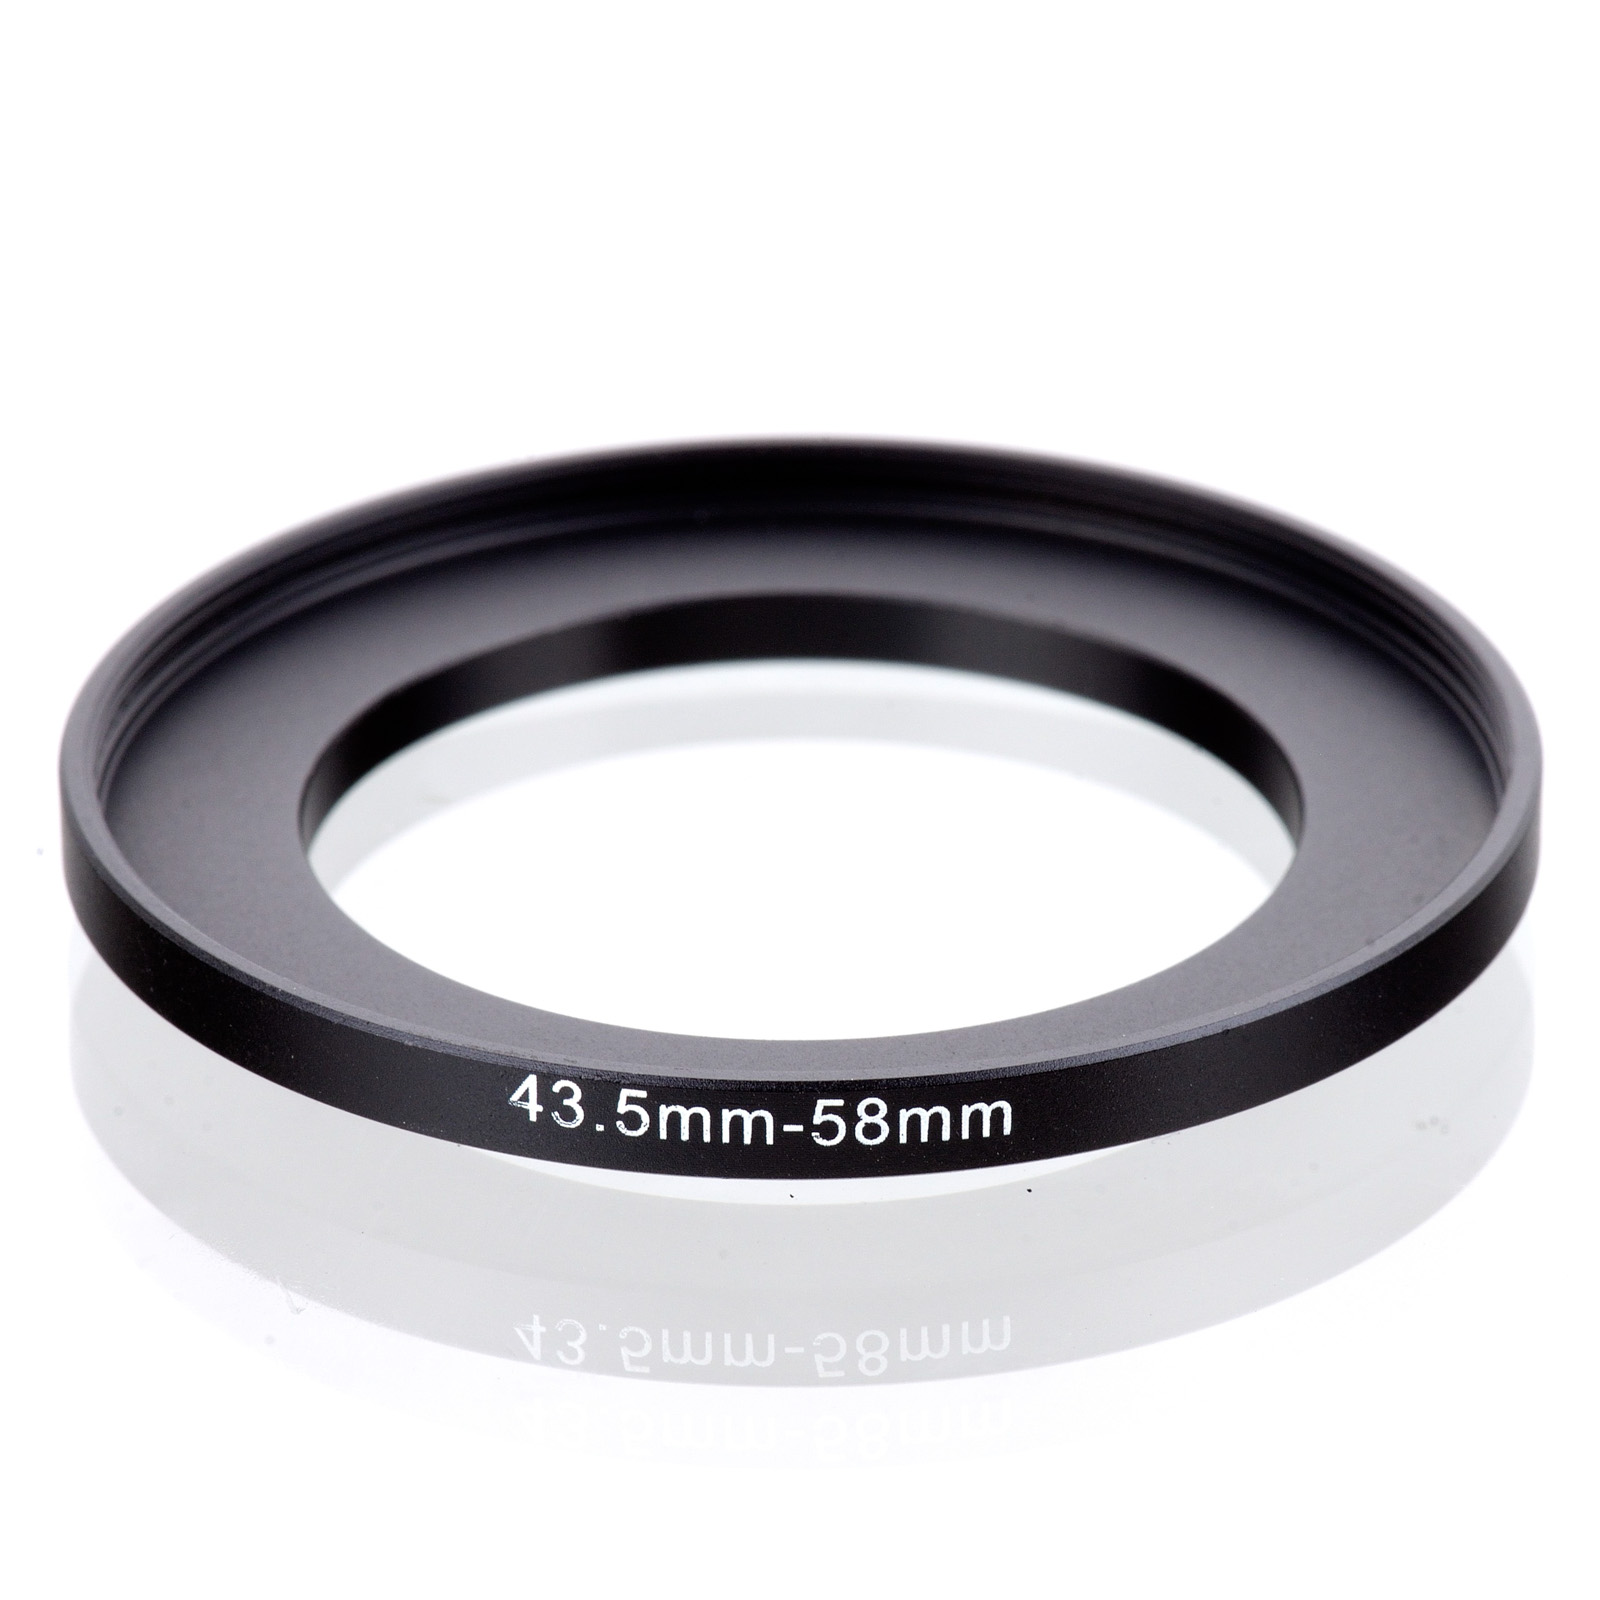 43.5mm-58mm 43.5-58 mm 43.5 to 58 Step UP Filter Ring Adapterfreeshipping